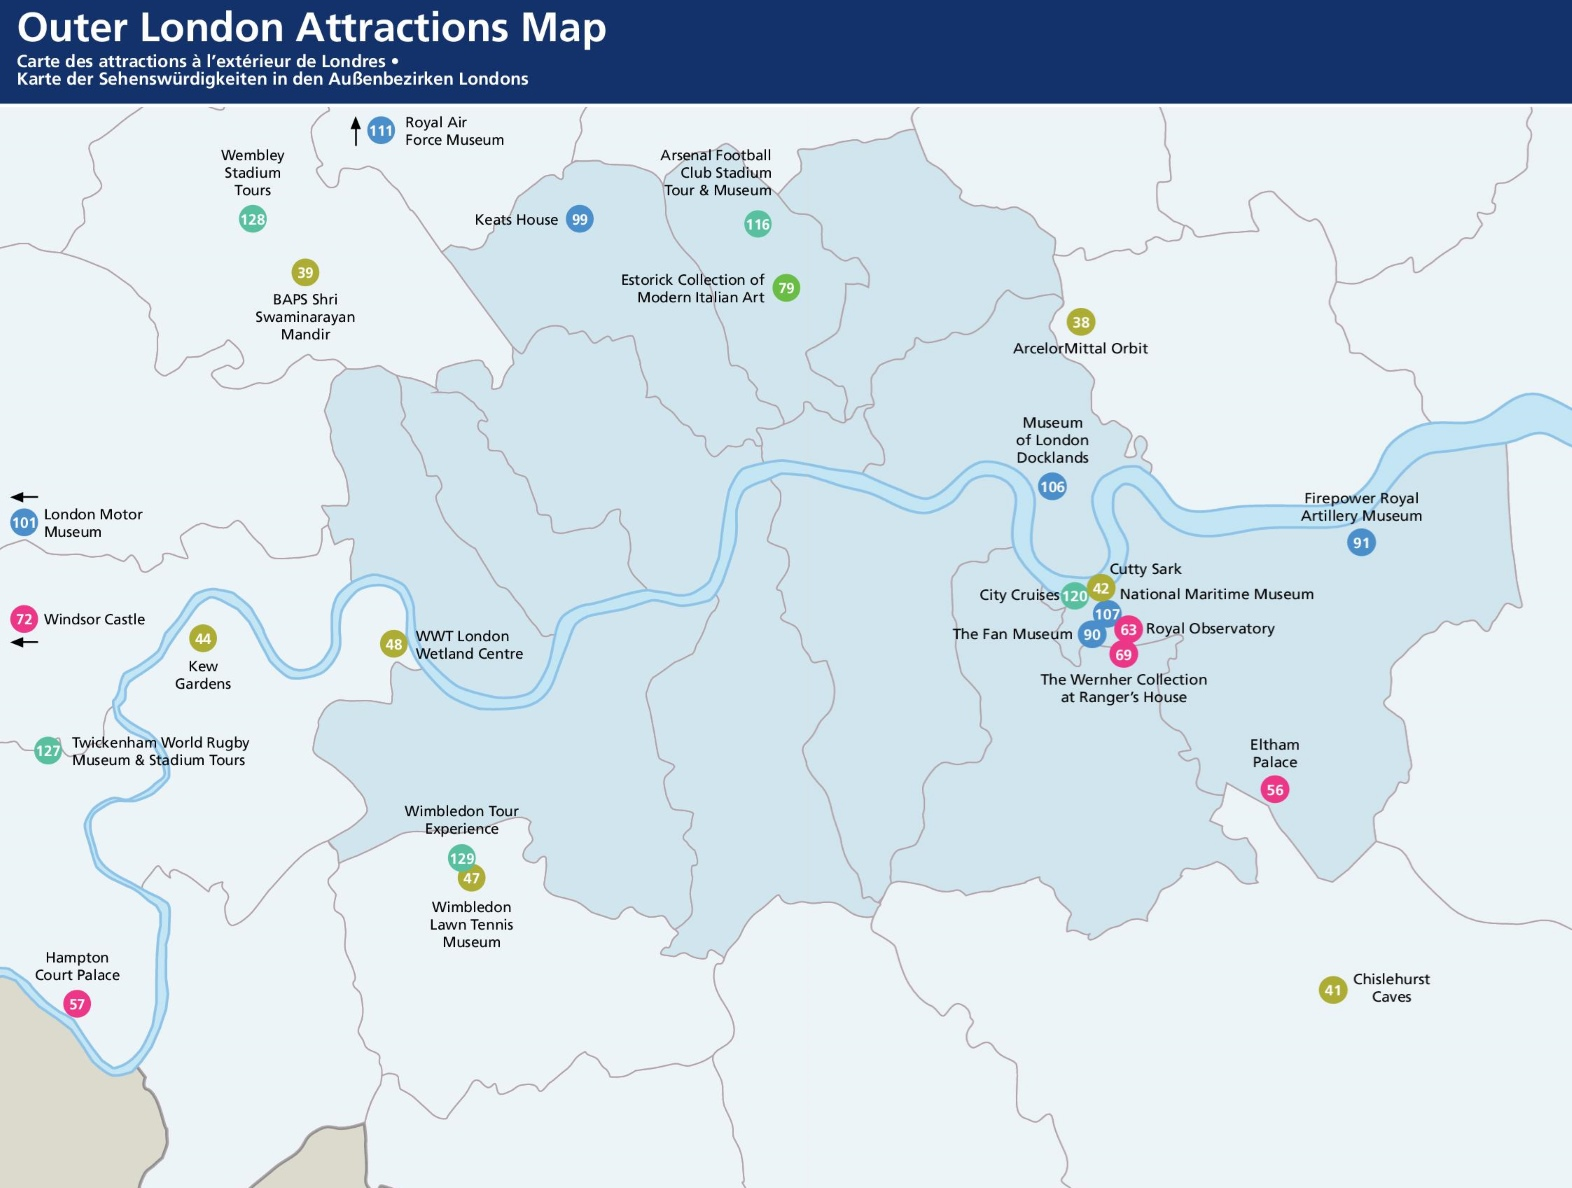 London Map Sightseeing.Outer London Tourist Attractions Map